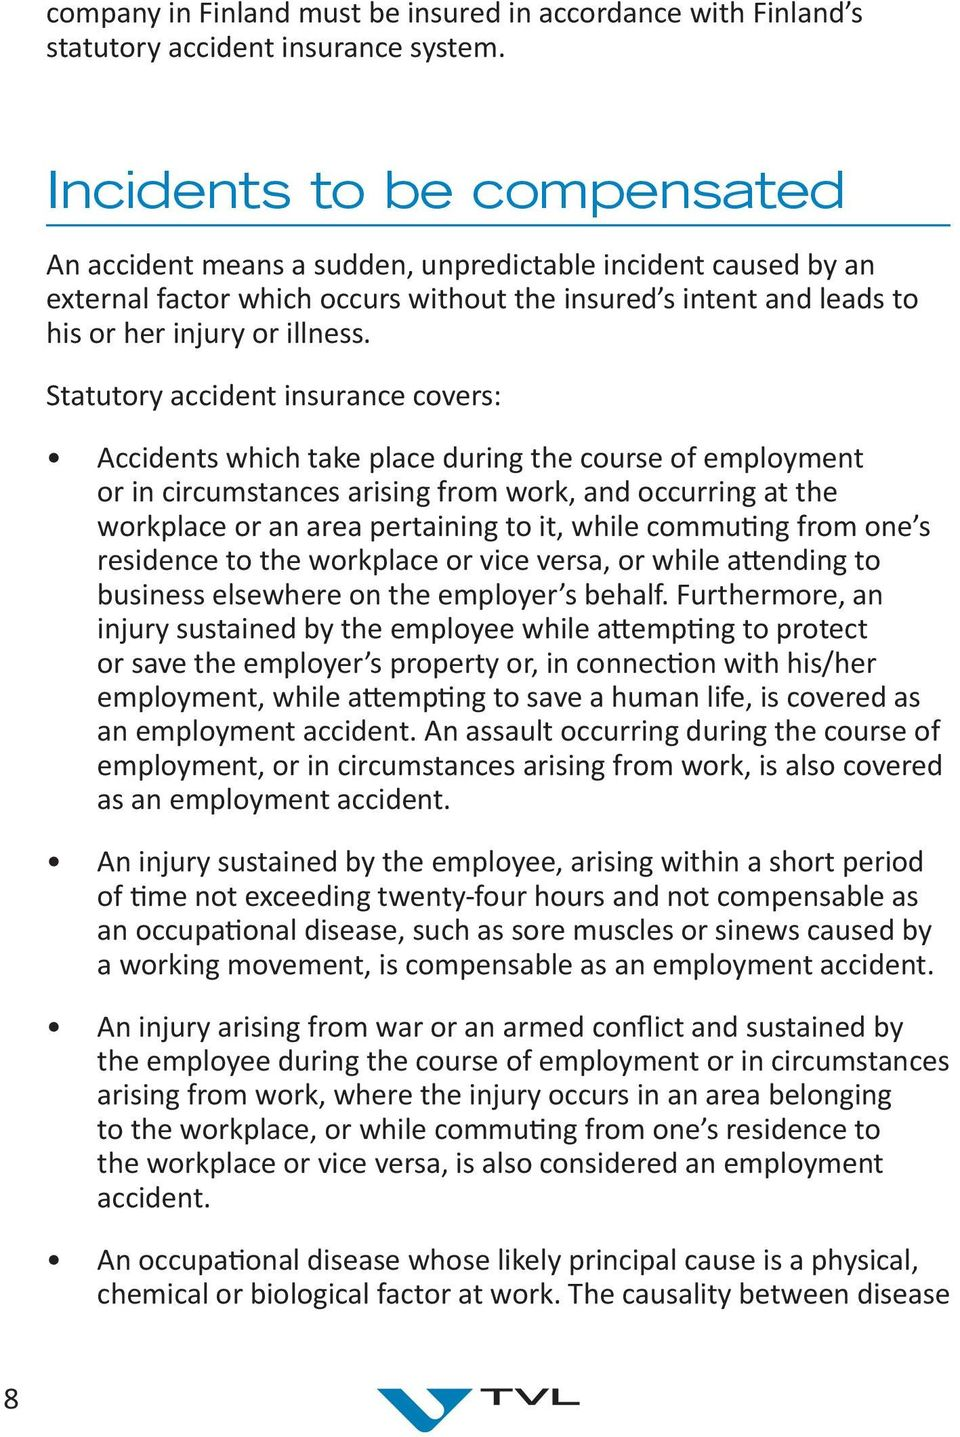 Statutory accident insurance covers: Accidents which take place during the course of employment or in circumstances arising from work, and occurring at the workplace or an area pertaining to it,